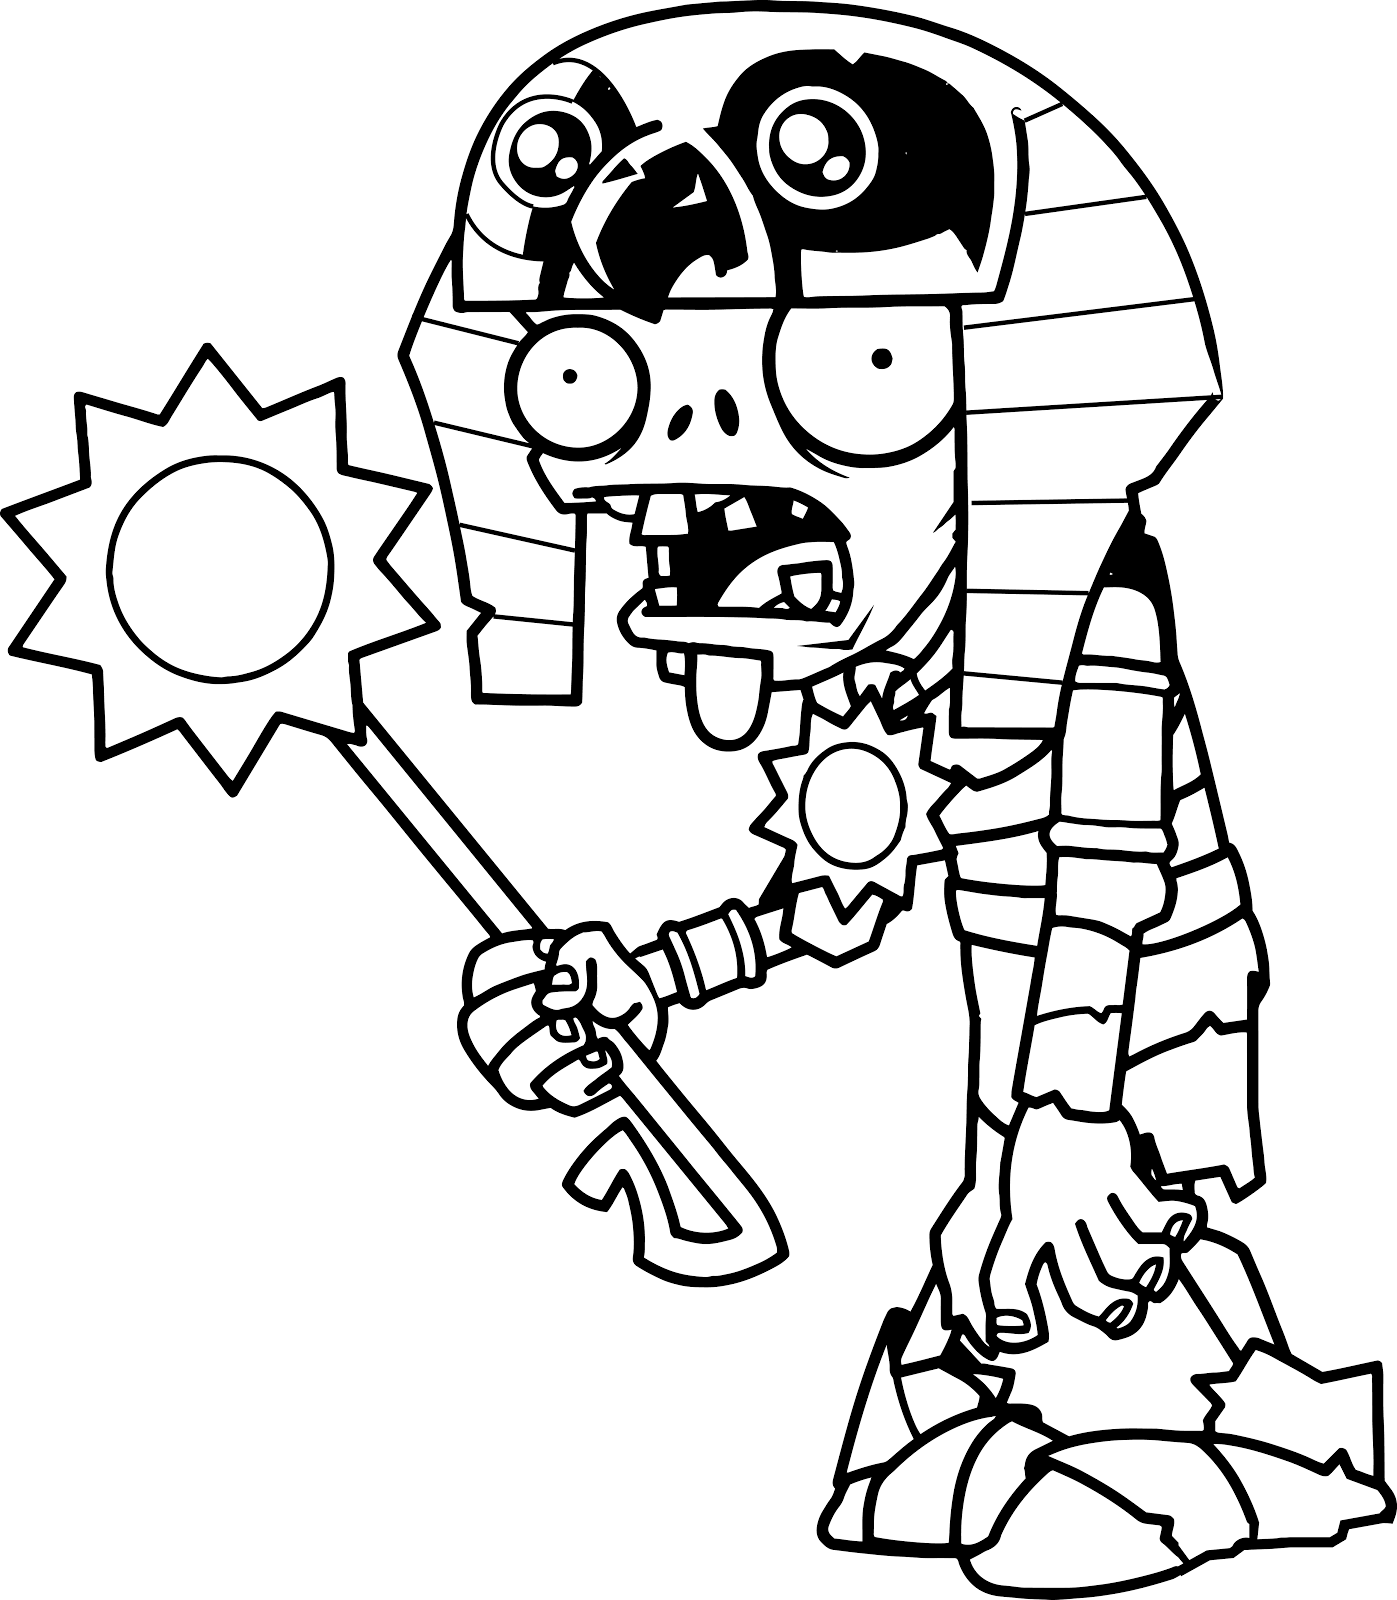 plants vs zombies coloring pages | Páginas para colorear originales Original coloring pages ...